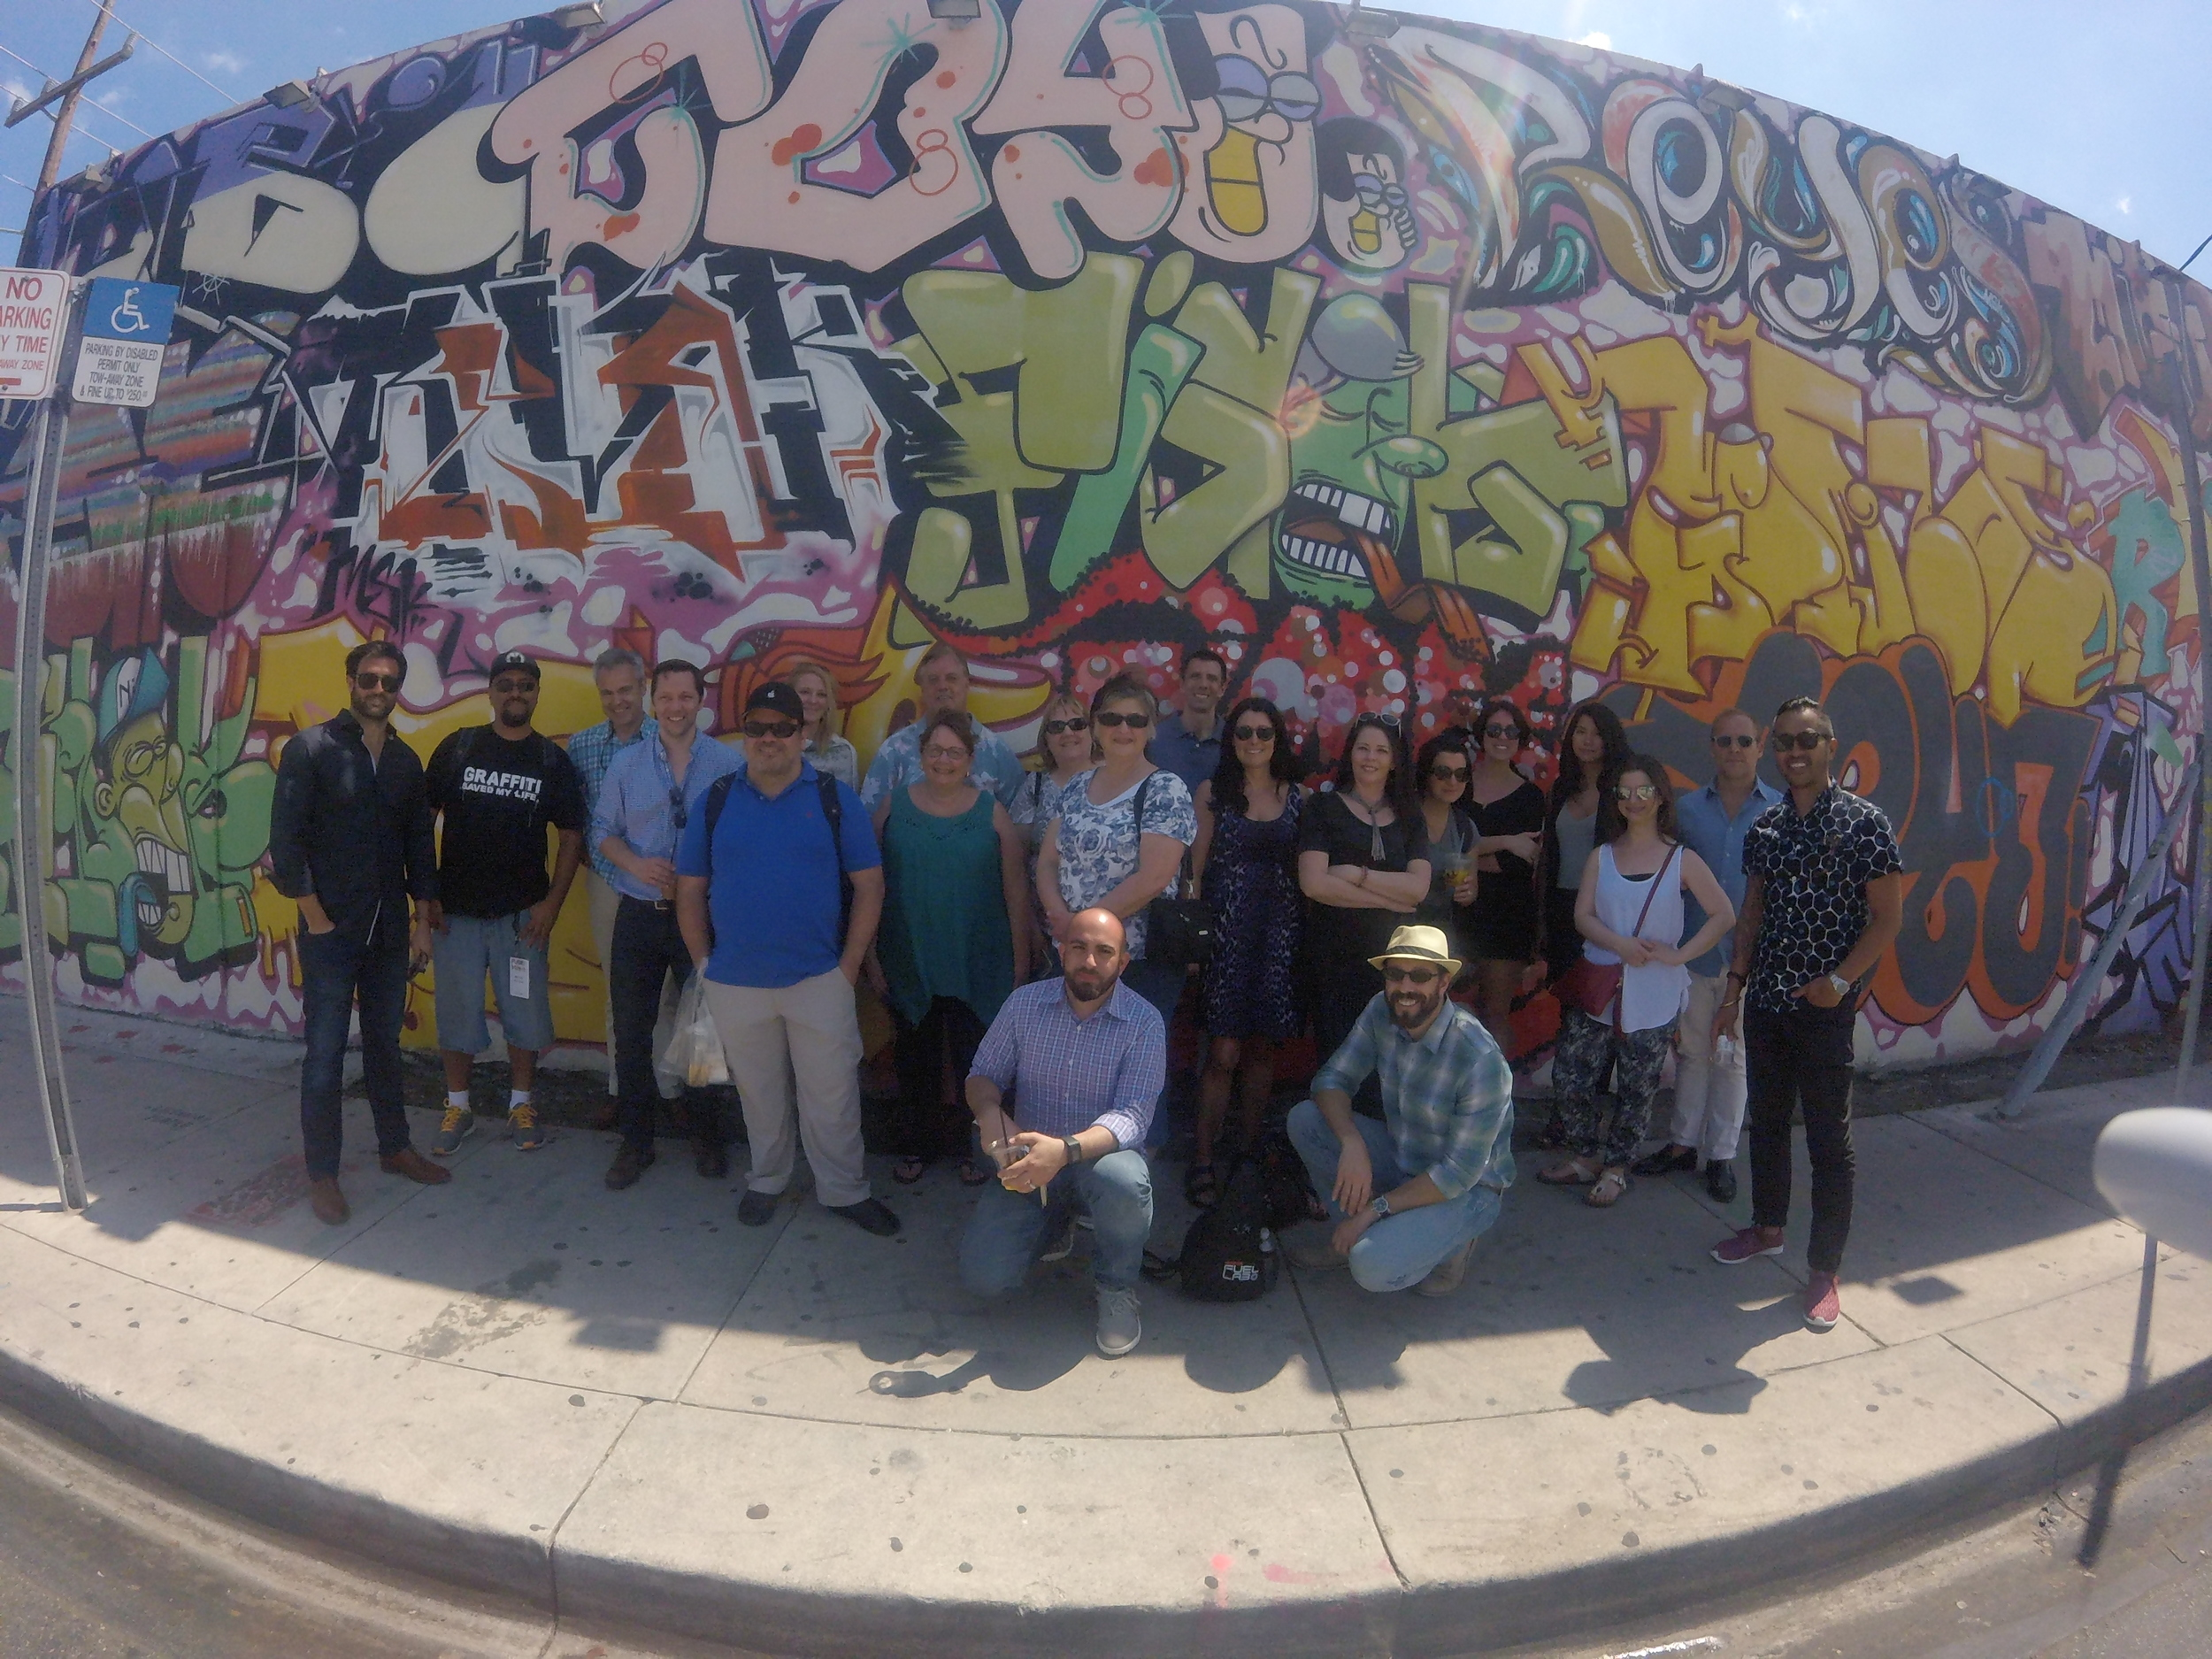 FUSE 2016 Wynwood Mural Tour participants led by me and Mikel Cirkus.